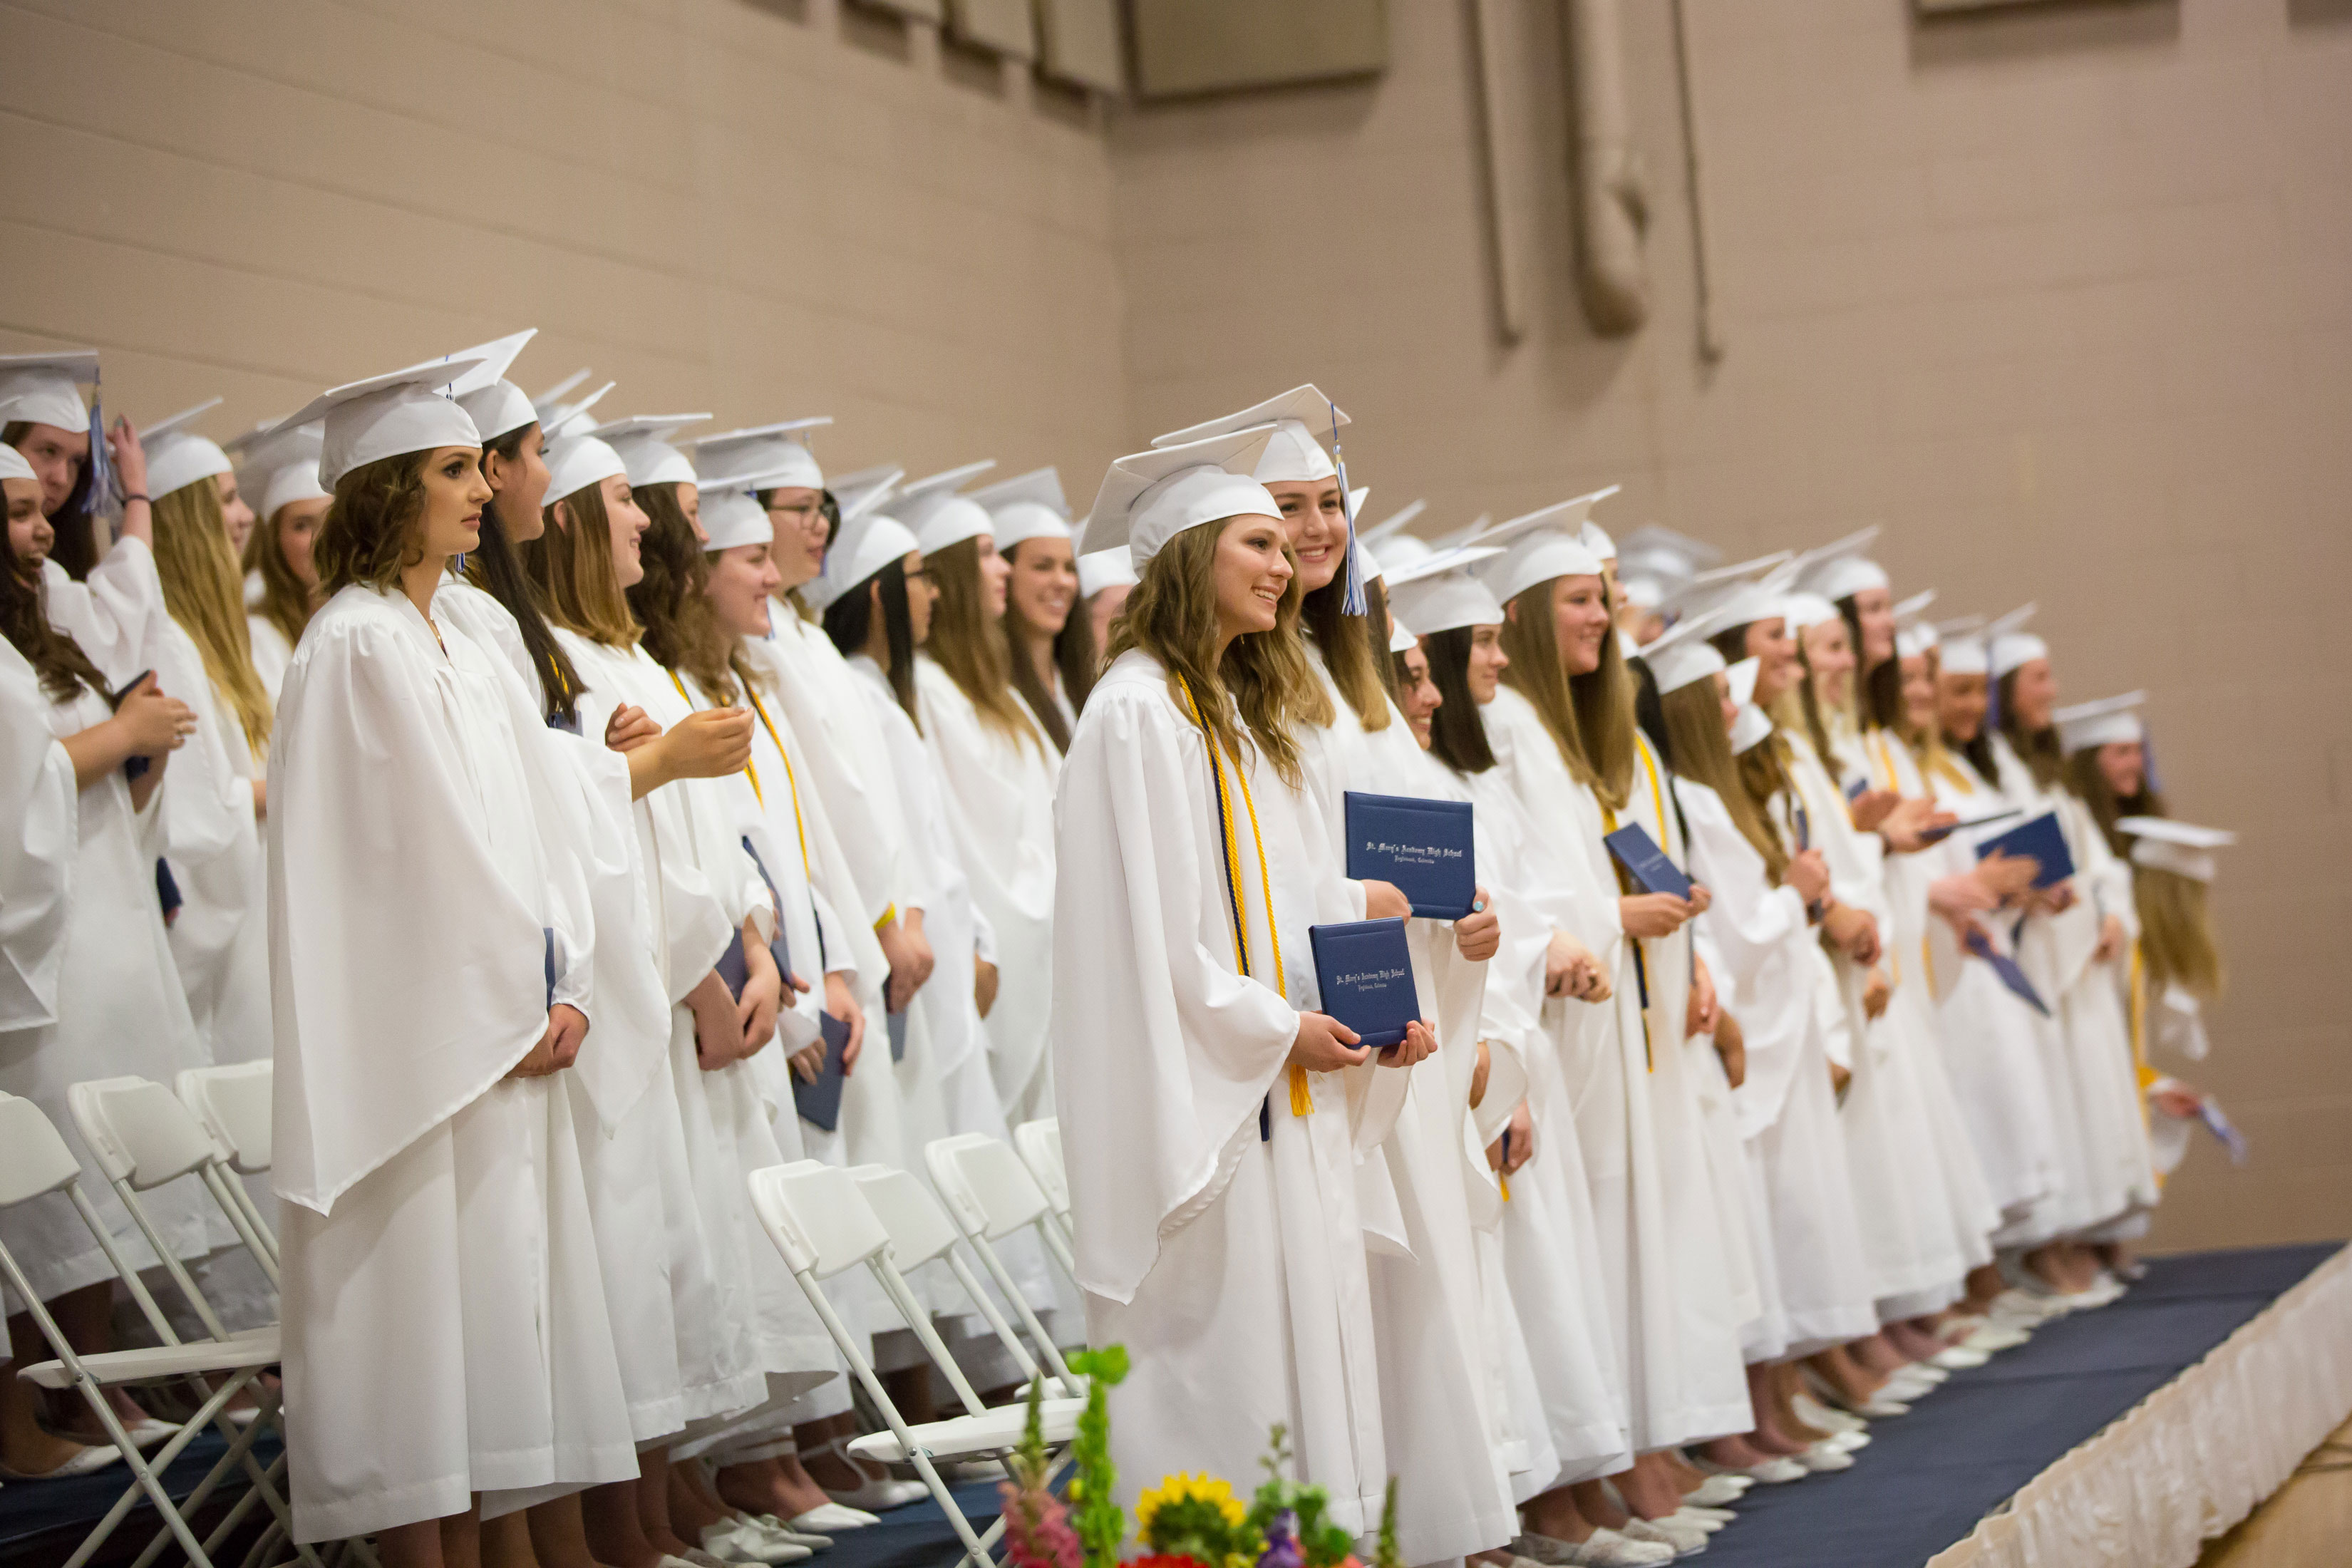 St. Mary's Academy Graduates the Class of 2018